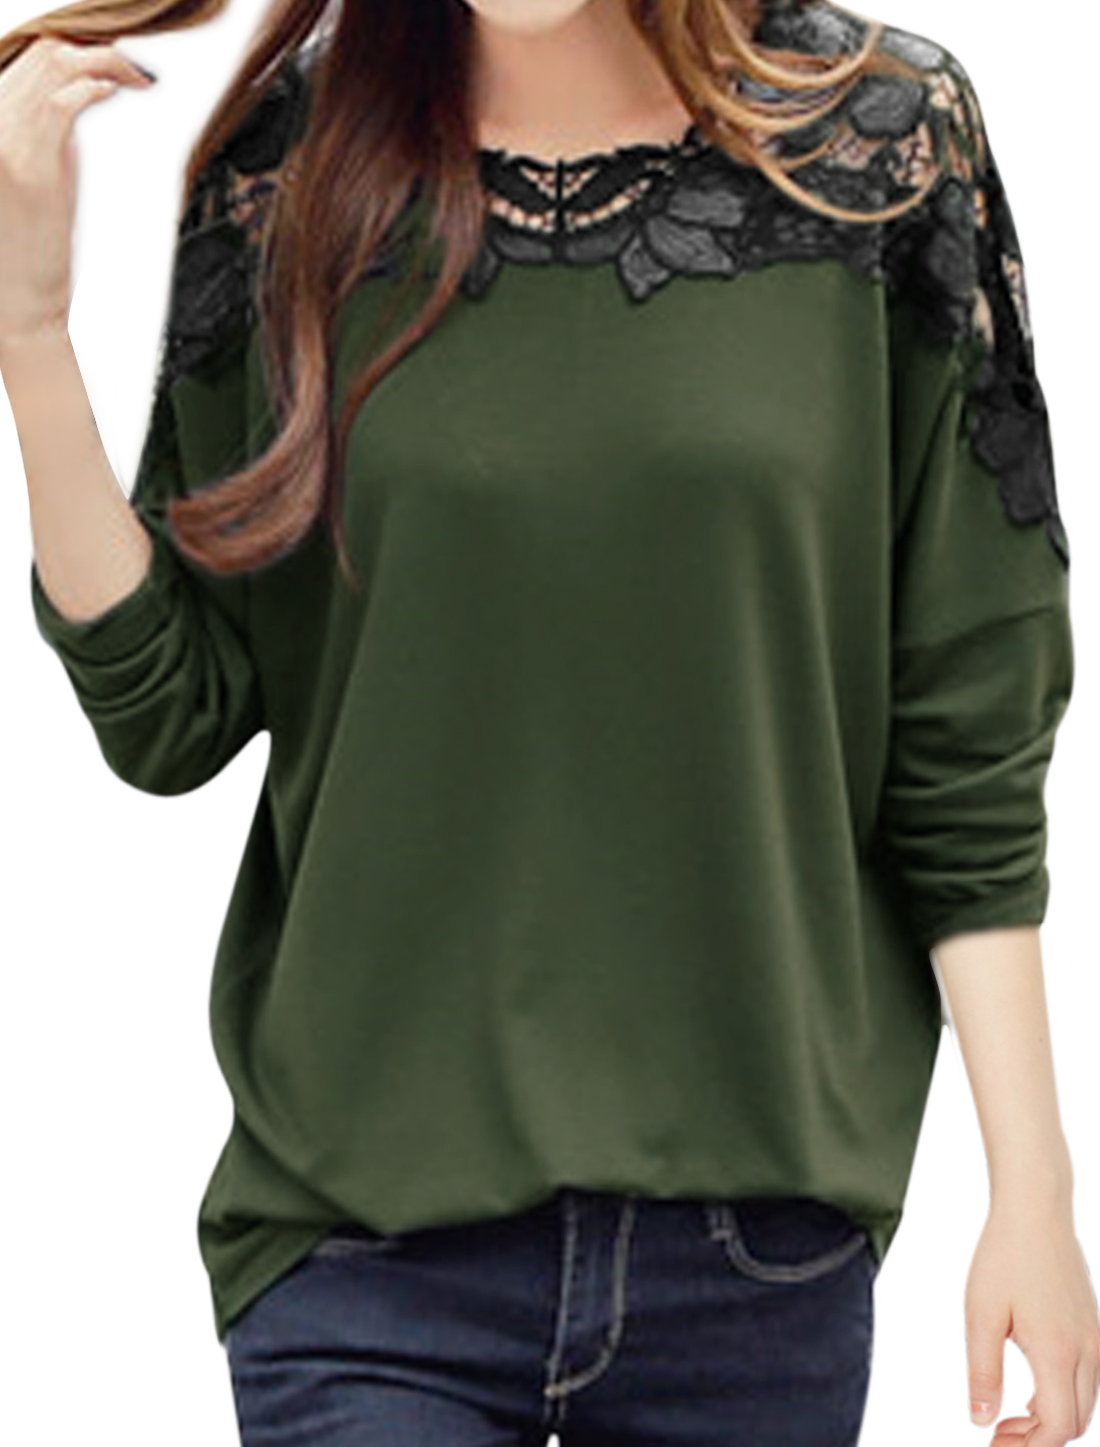 Ladies Army Green Scalloped Neck Batwing Sleeves Crochet Splice Casual Shirt M